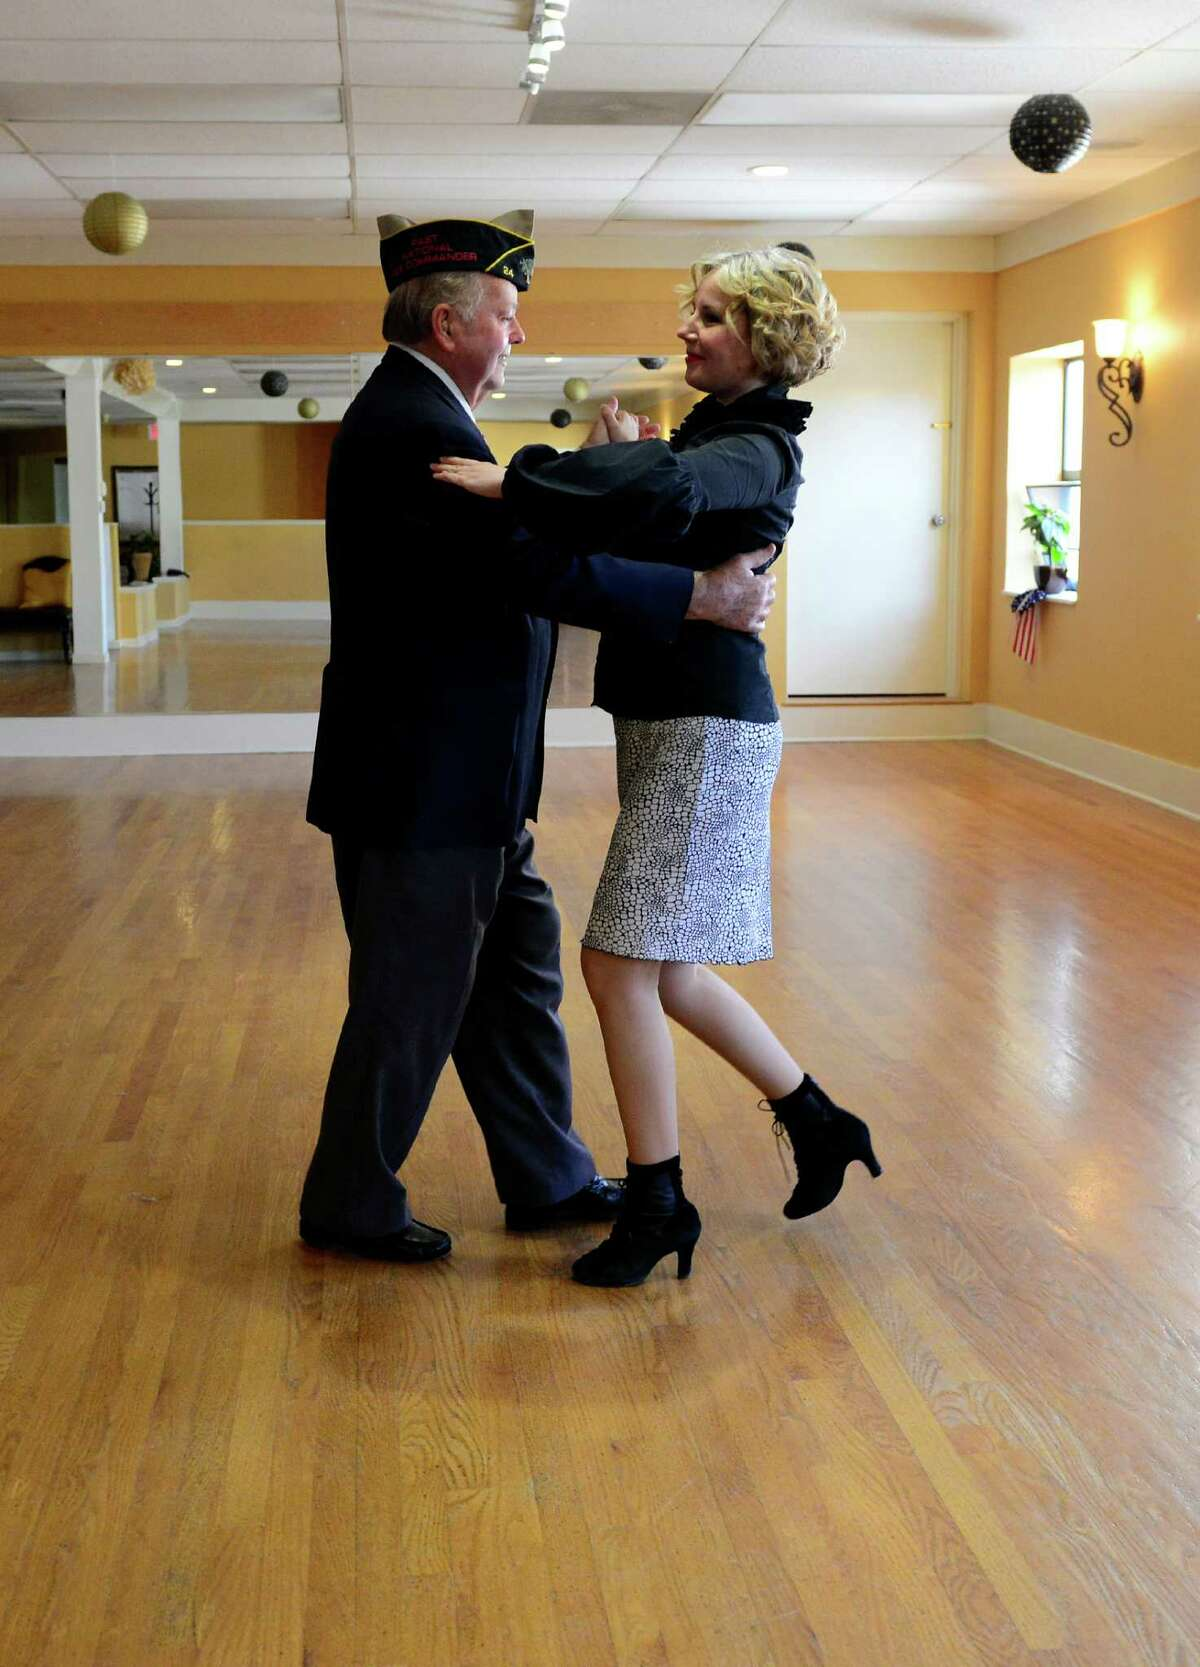 """Fred Astaire Dance Studio owner Monika Barska dances with Korean War-era veteran Gus Williams in Southport, Conn. on Thursday August 28, 2014. The Fred Astaire pros are teamed up with veterans to take part in the """"Dancing With Our Heroes"""" event in Hartford on September 13, 2014. The dance will help raise money to build a Fisher House at the VA in West Haven."""